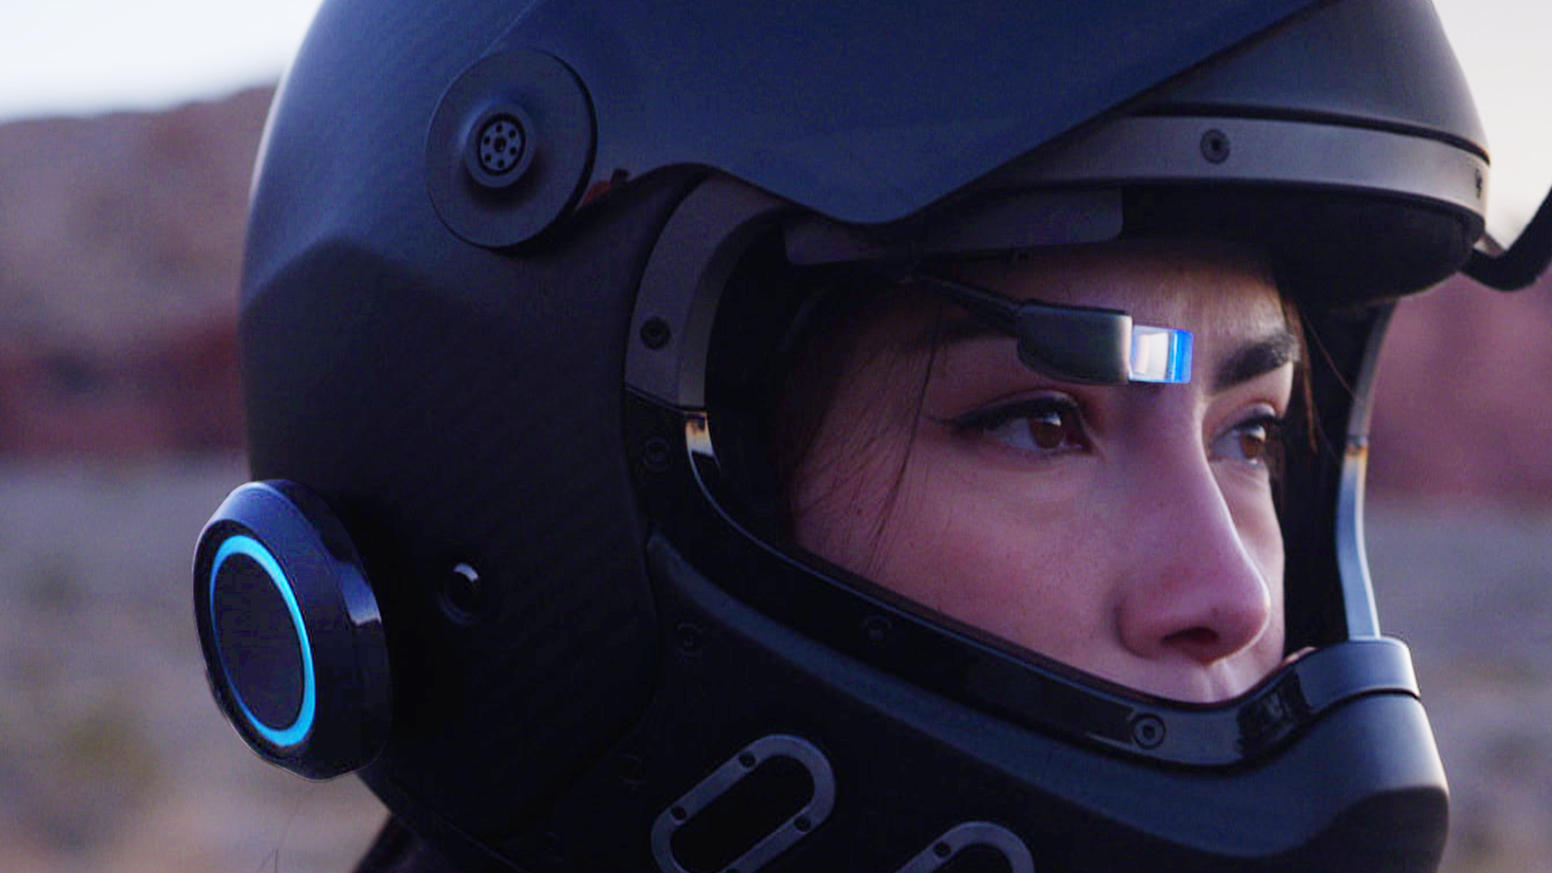 Augment your helmet with GPS, Music, and Calls. Ride Safe with our HEAD-UP DISPLAY add on.